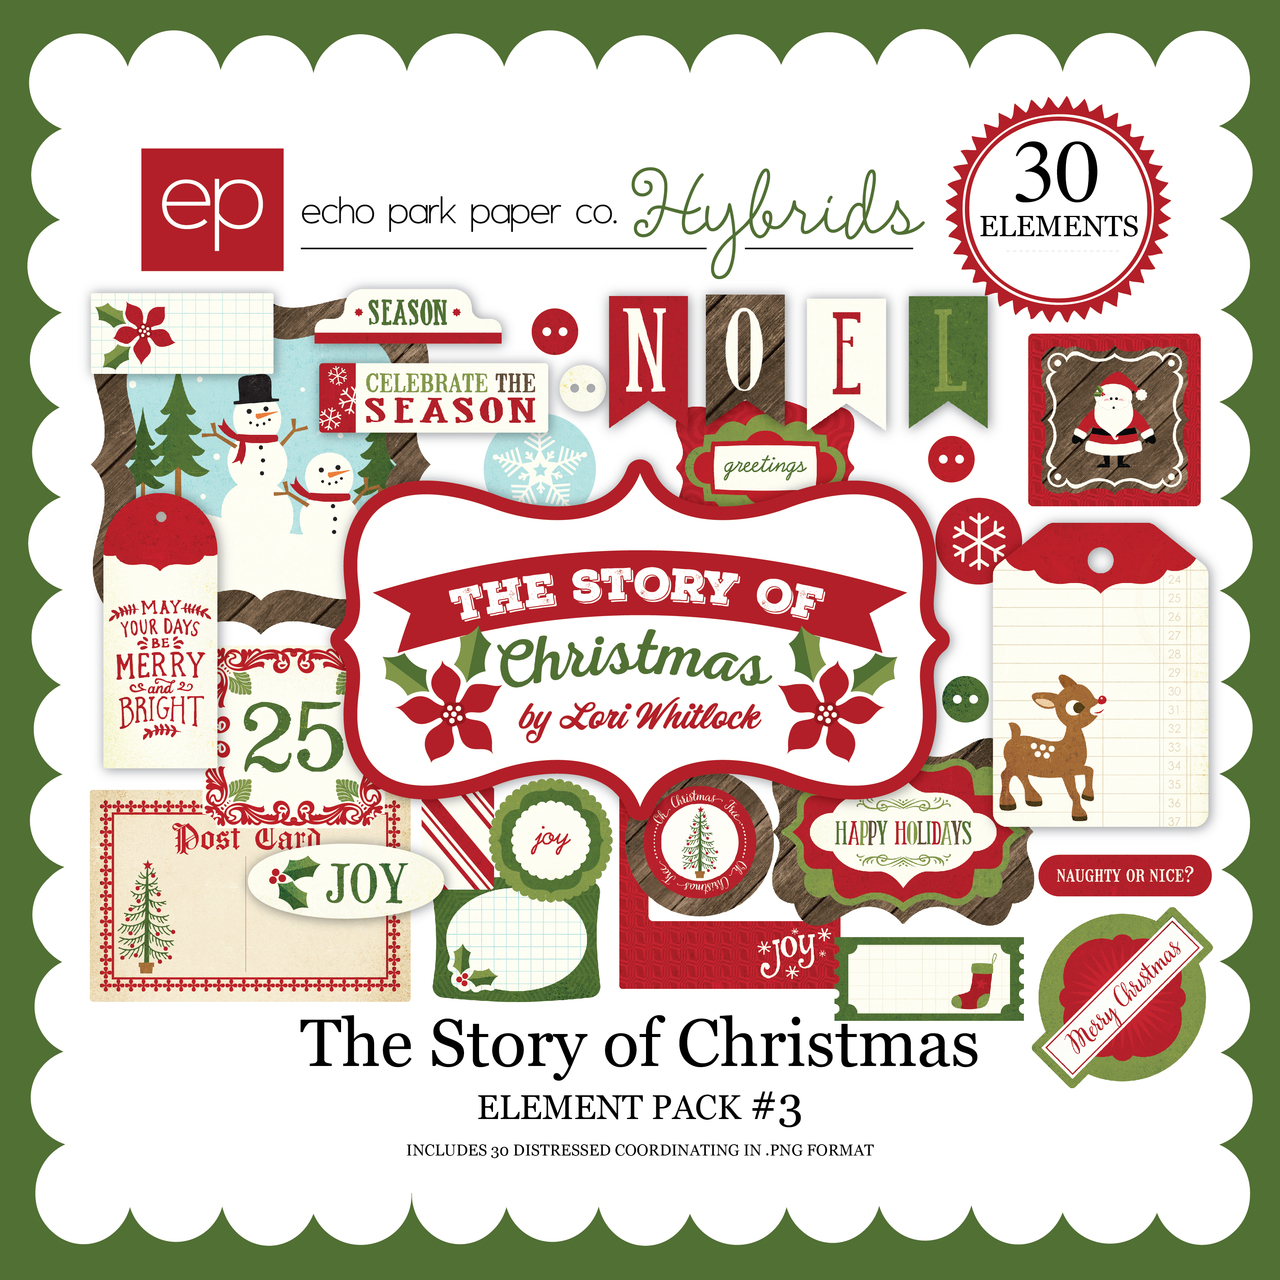 The Story of Christmas Element Pack 3